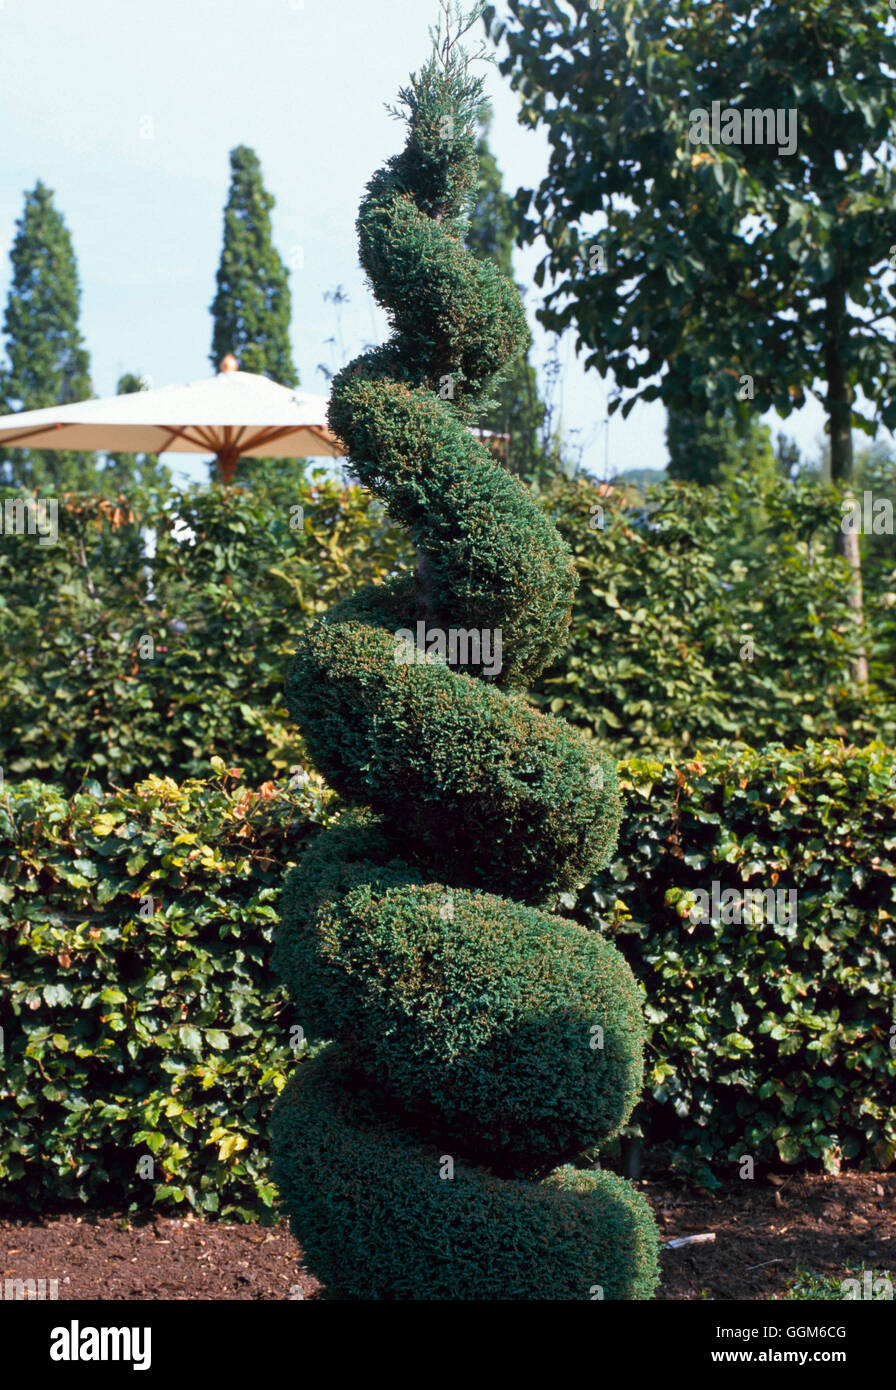 Topiary - of Chamaecyparis lawsoniana 'Fletcheri' (20 years old)   TOP104976     Photos Horticultura - Stock Image